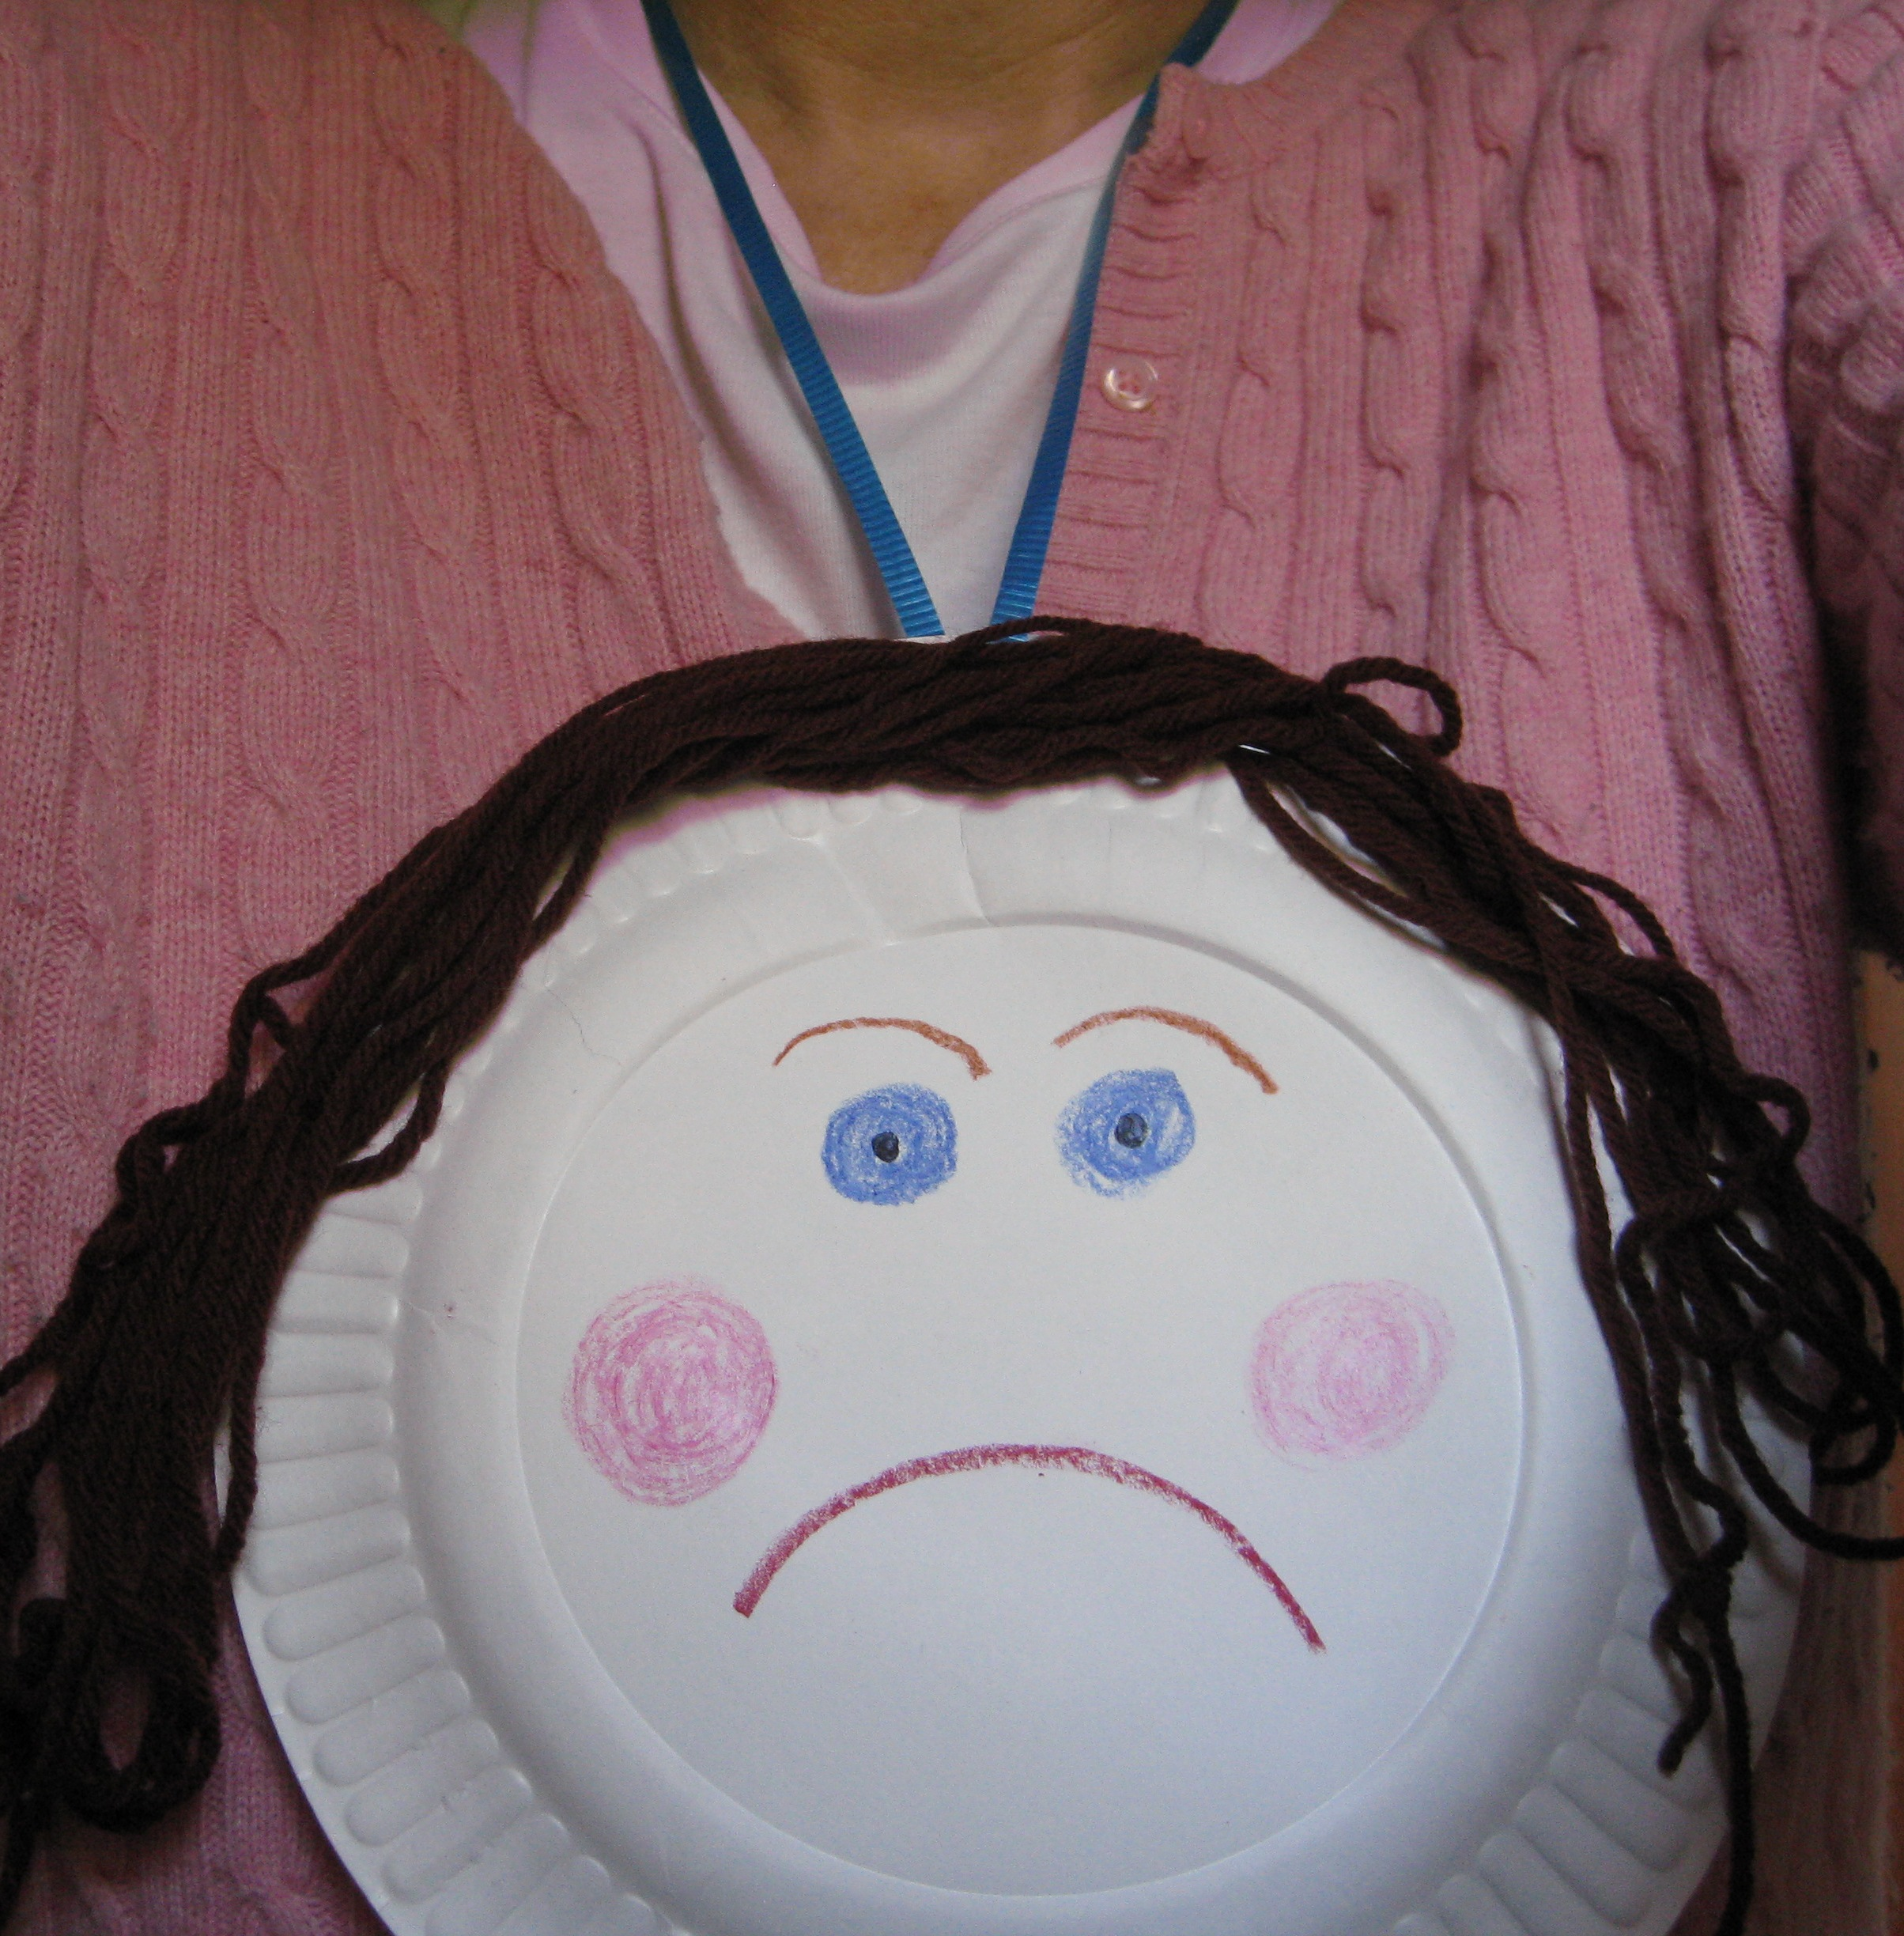 Add a hanger so you can wear Paper Plate Menopause Lady around your neck. & Paper Plate Menopause Lady: A Craft Project - talkhealth ...